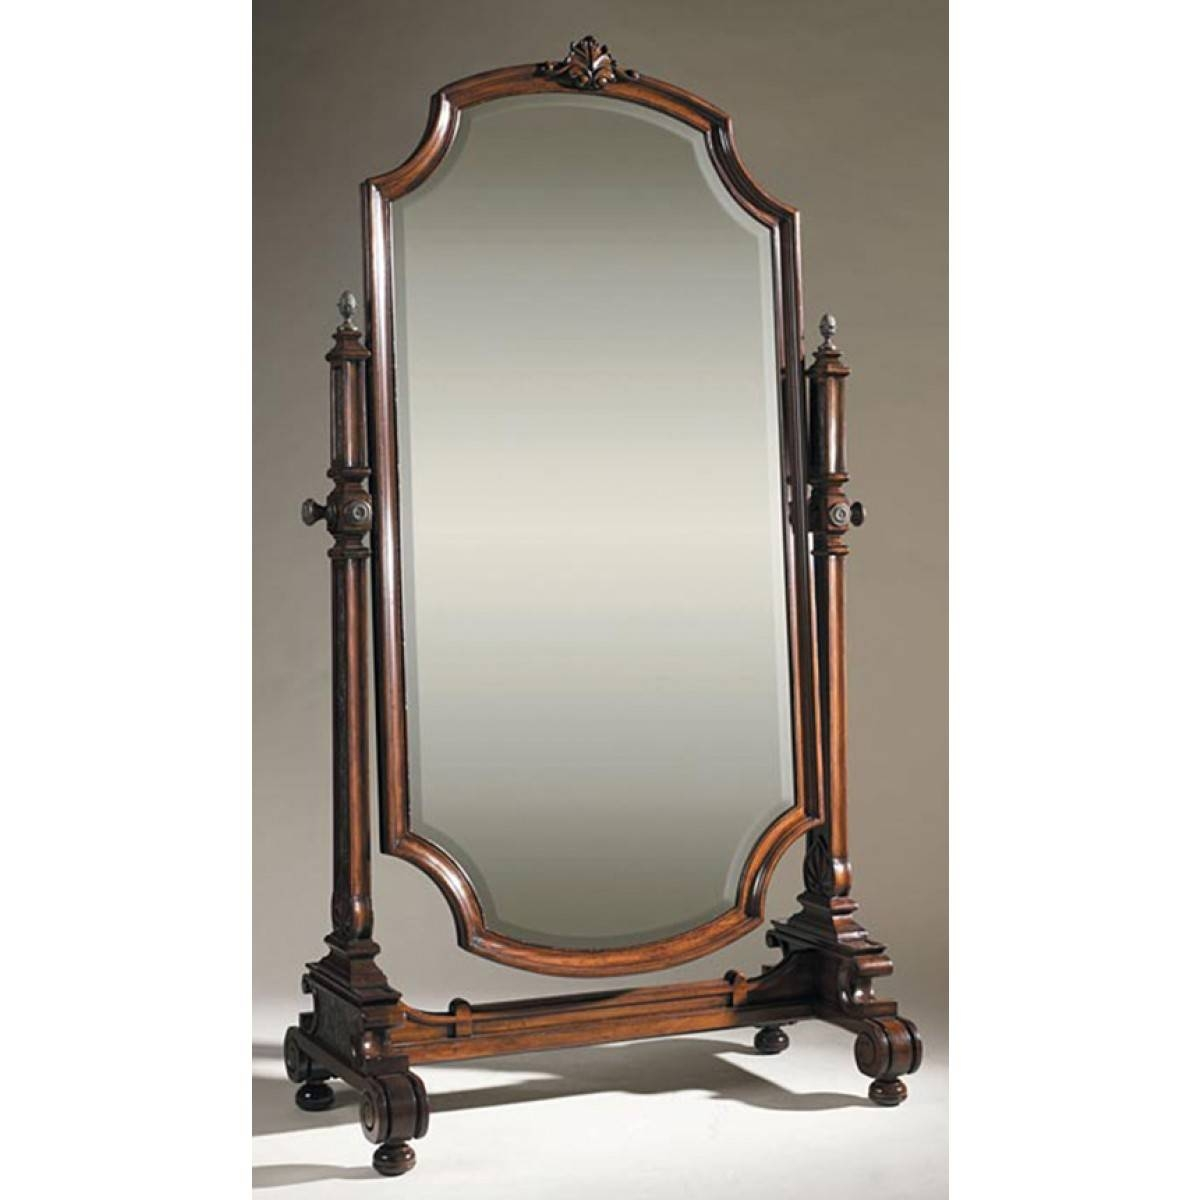 Smith Aged Regency Finished Cheval Mirror Frame, Beveled Mirror within Cheval Mirrors (Image 24 of 25)